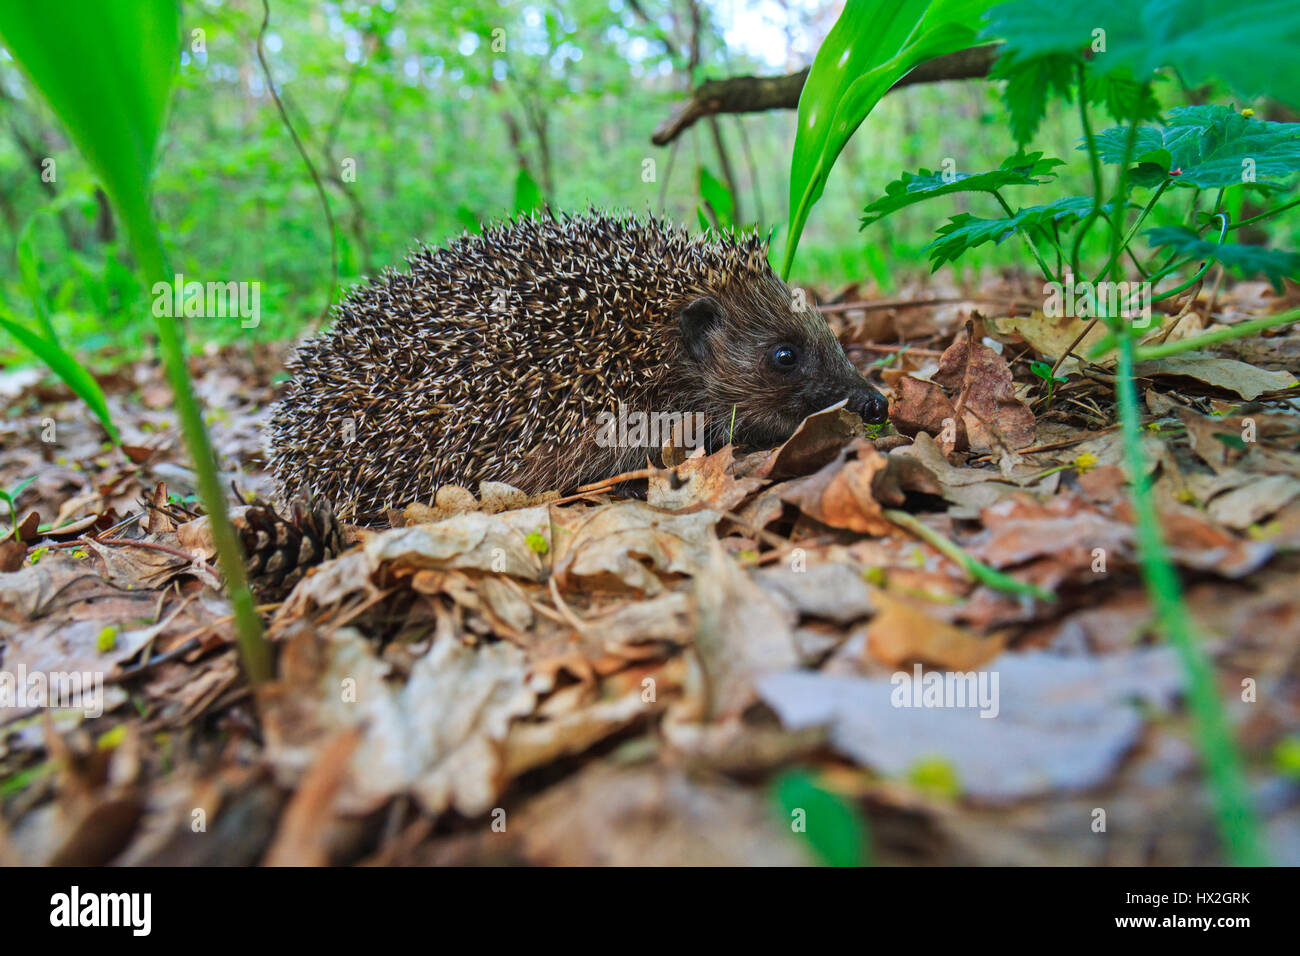 cute young european hedgehog among the dry leaves,mammals, predator prickly animal complex, nocturnal animal, the - Stock Image